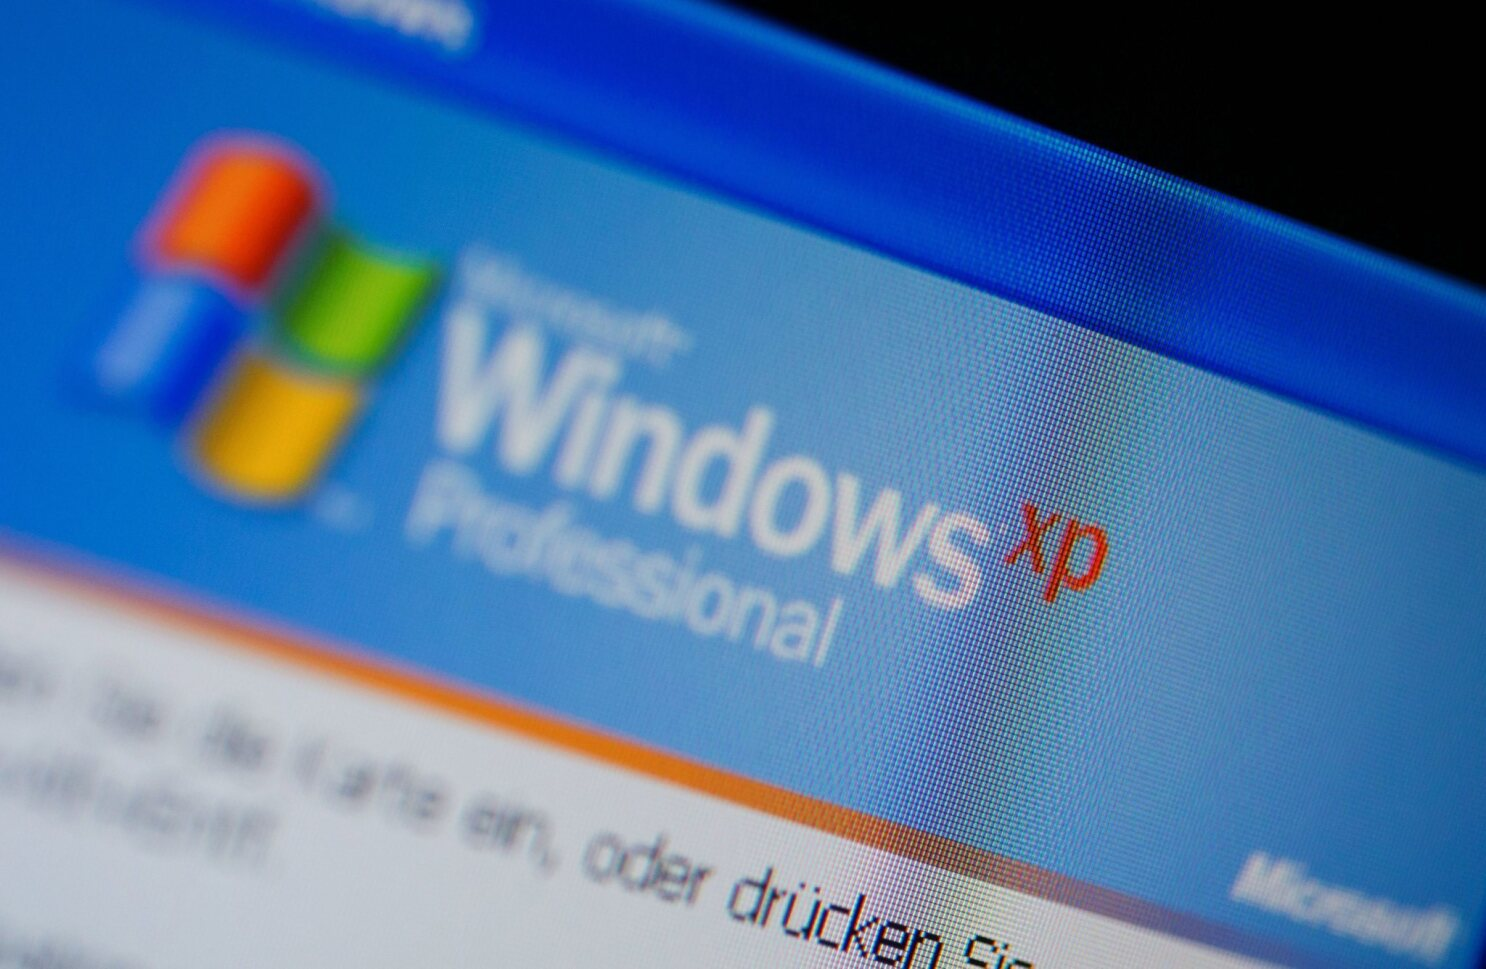 Can your Windows XP computer upgrade to Windows 7, 8.1? - Los Angeles Times